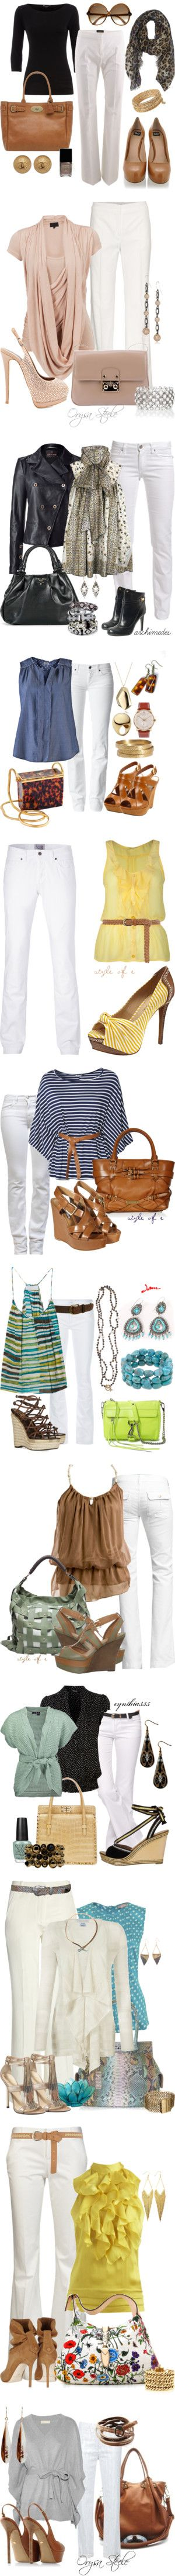 """Heels and White Pants"" by esha2001 on Polyvore"